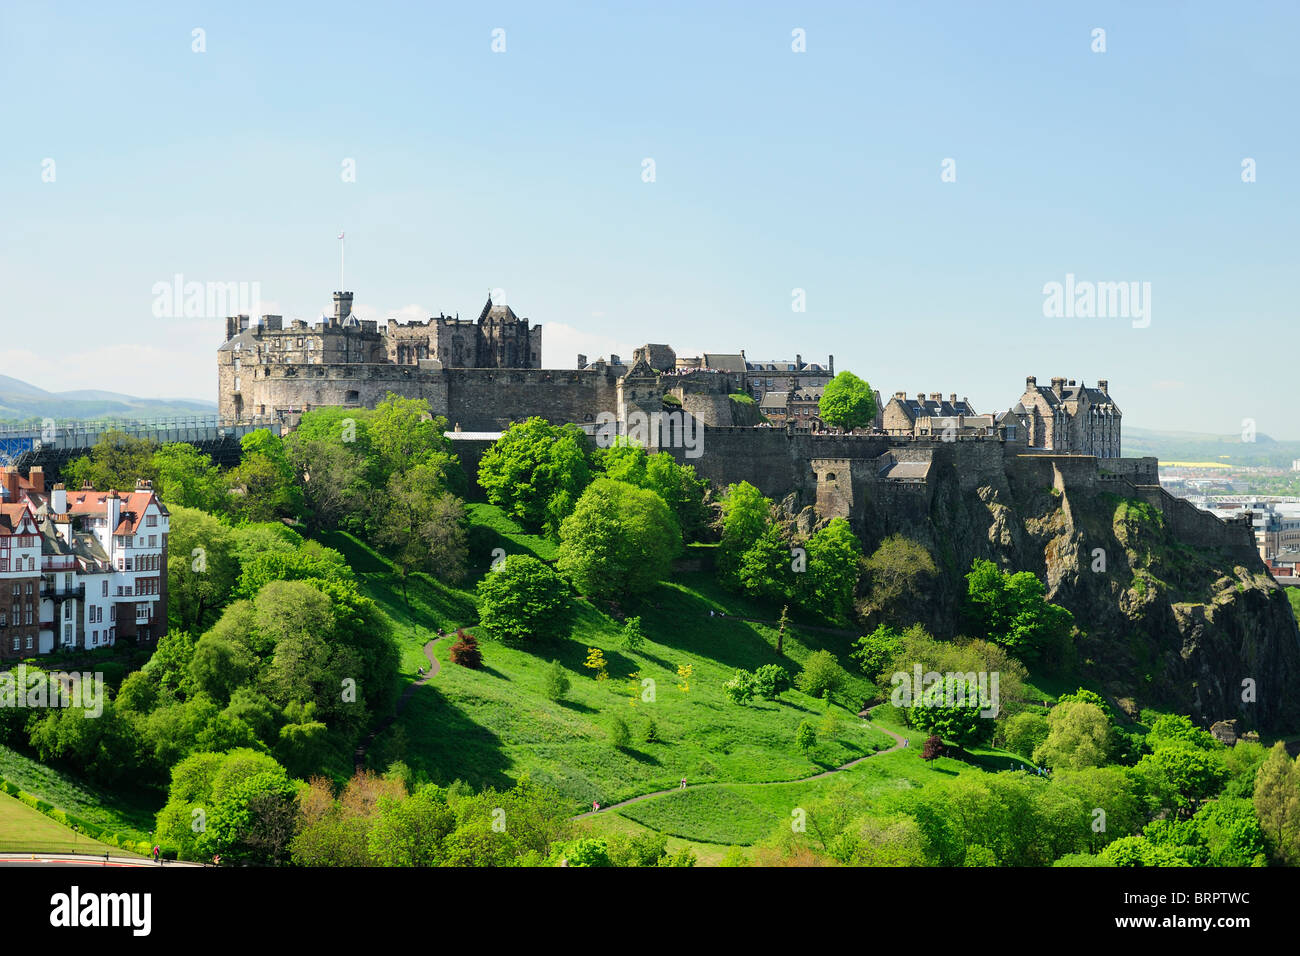 Edinburgh Castle and The Mound from the Scott Monument in Princes Street Gardens, Edinburgh, Scotland - Stock Image